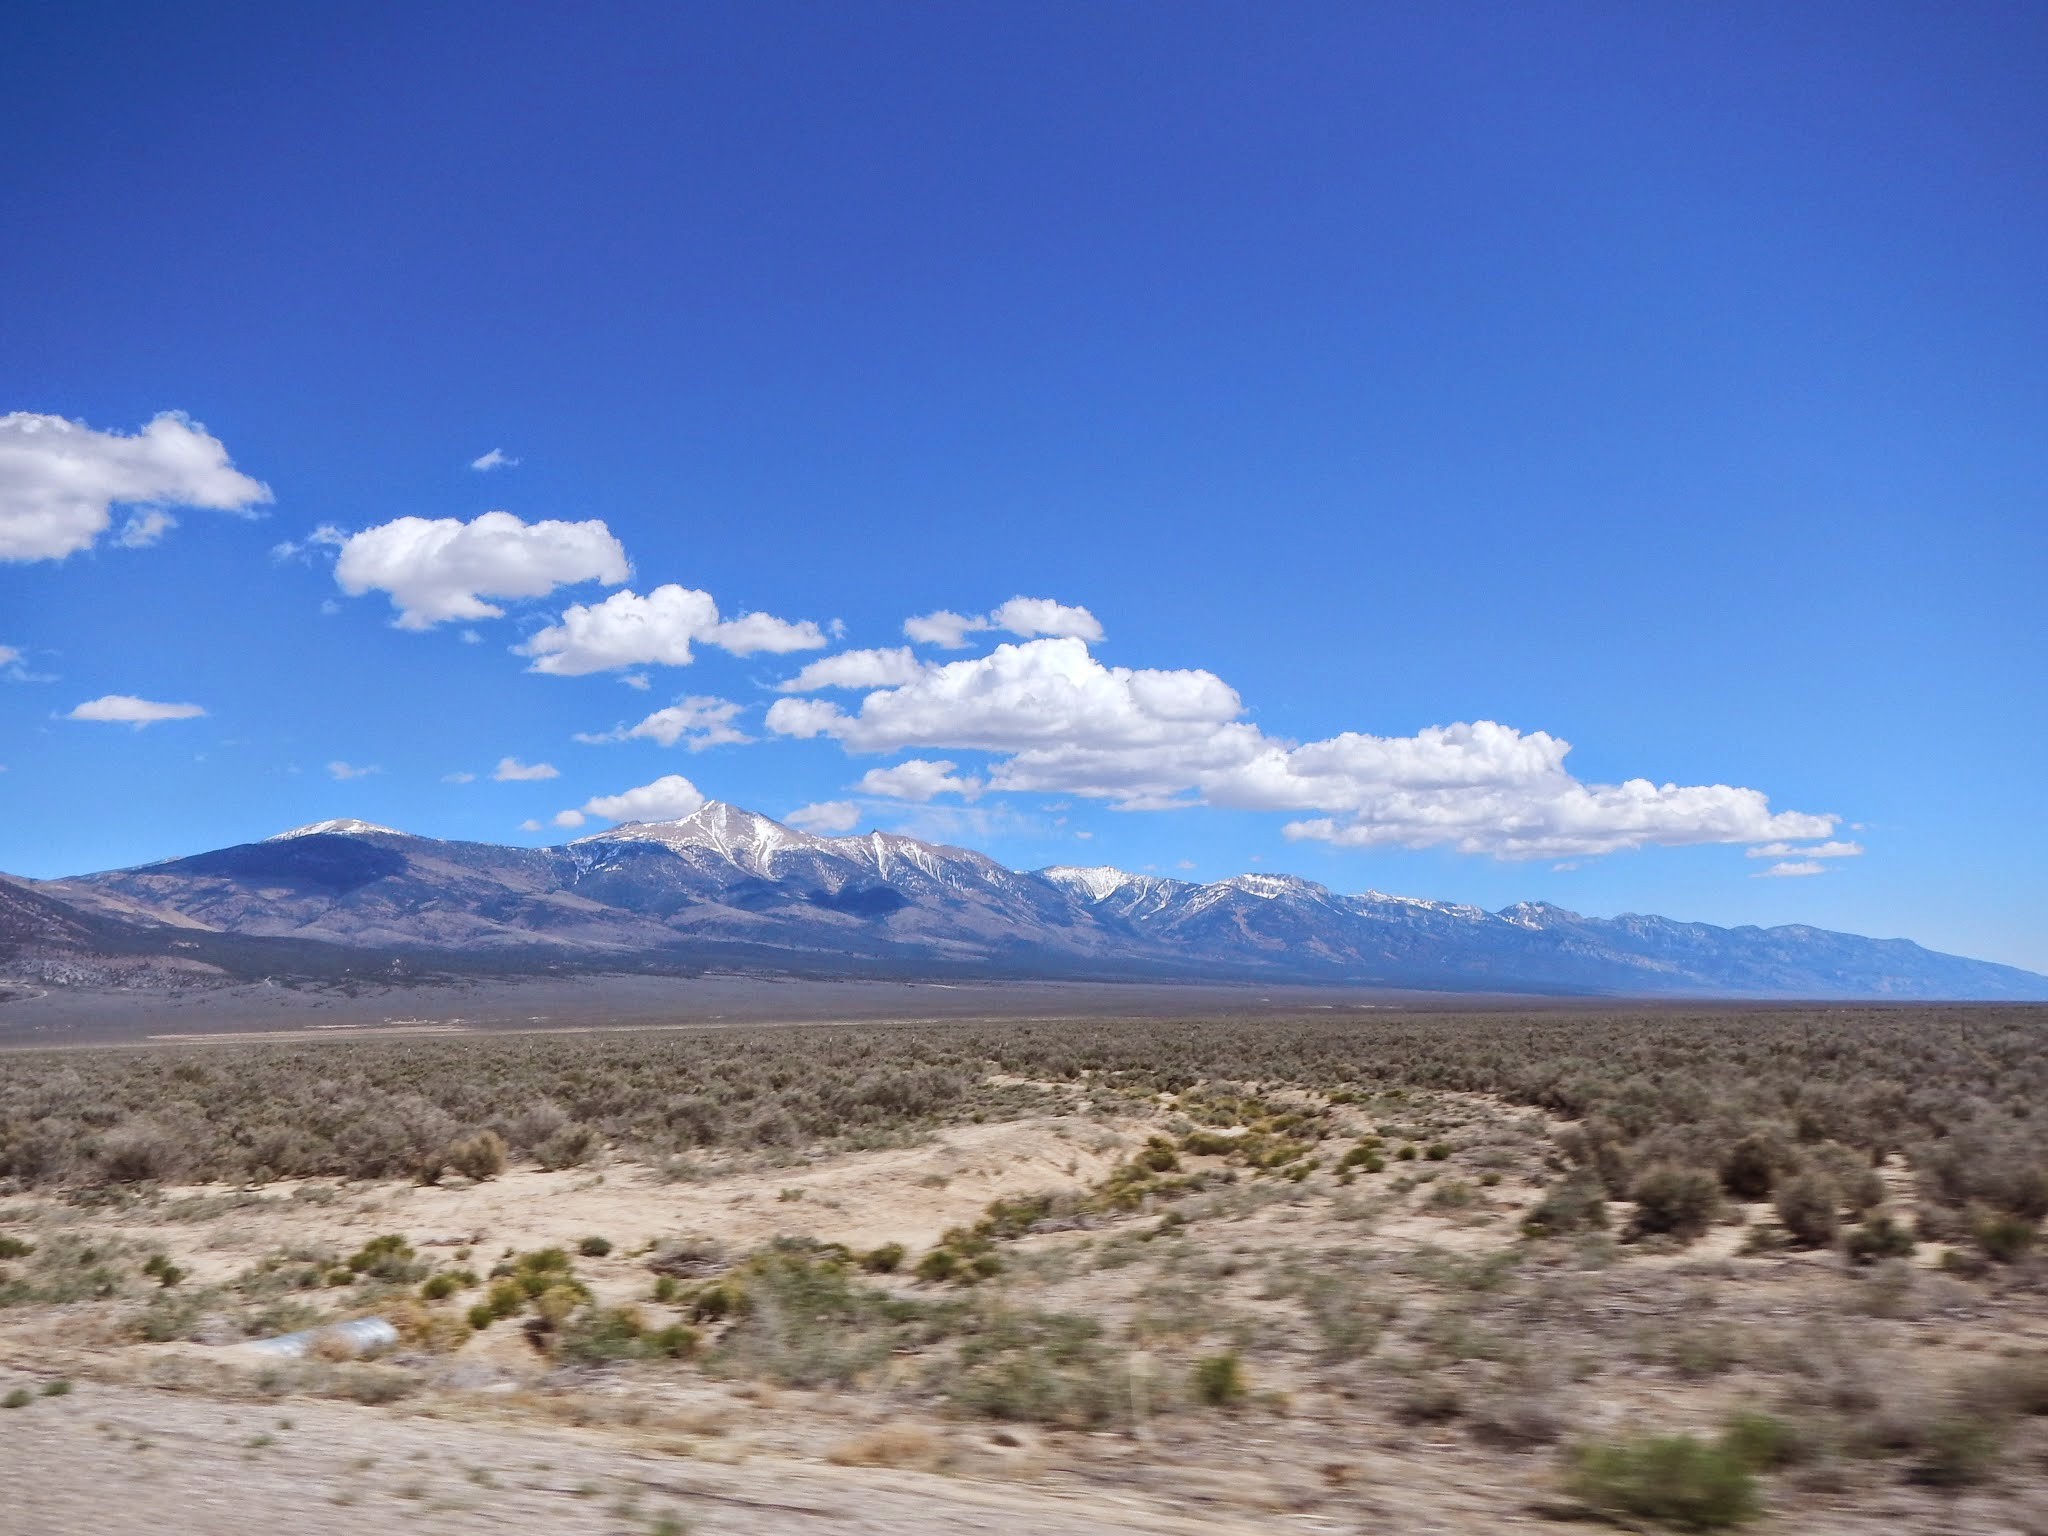 Photo: Driving into the park from the west, Wheeler Peak comes into view.